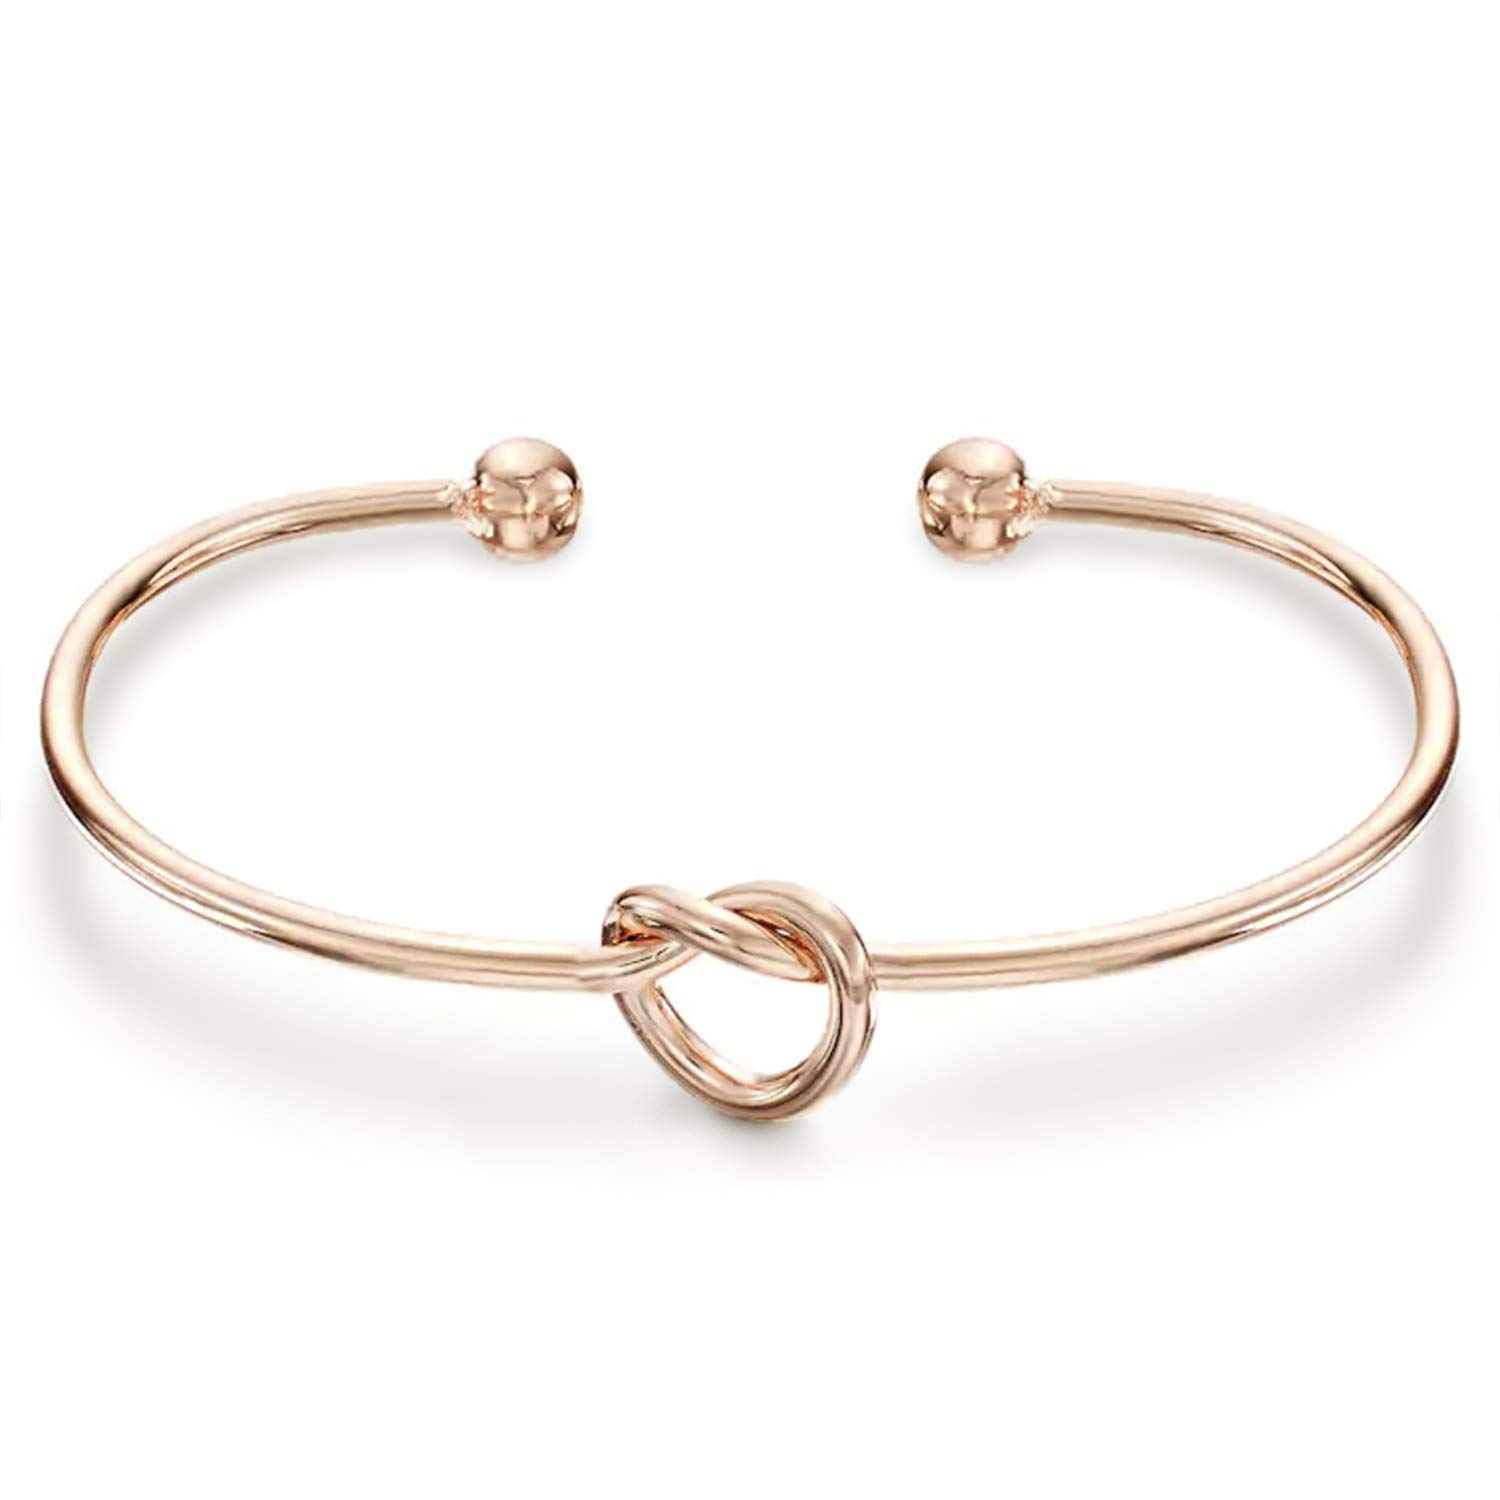 PAVOI 14K Rose Gold Plated Adjustable Infinity Forever Love Knot Bracelet Bangle